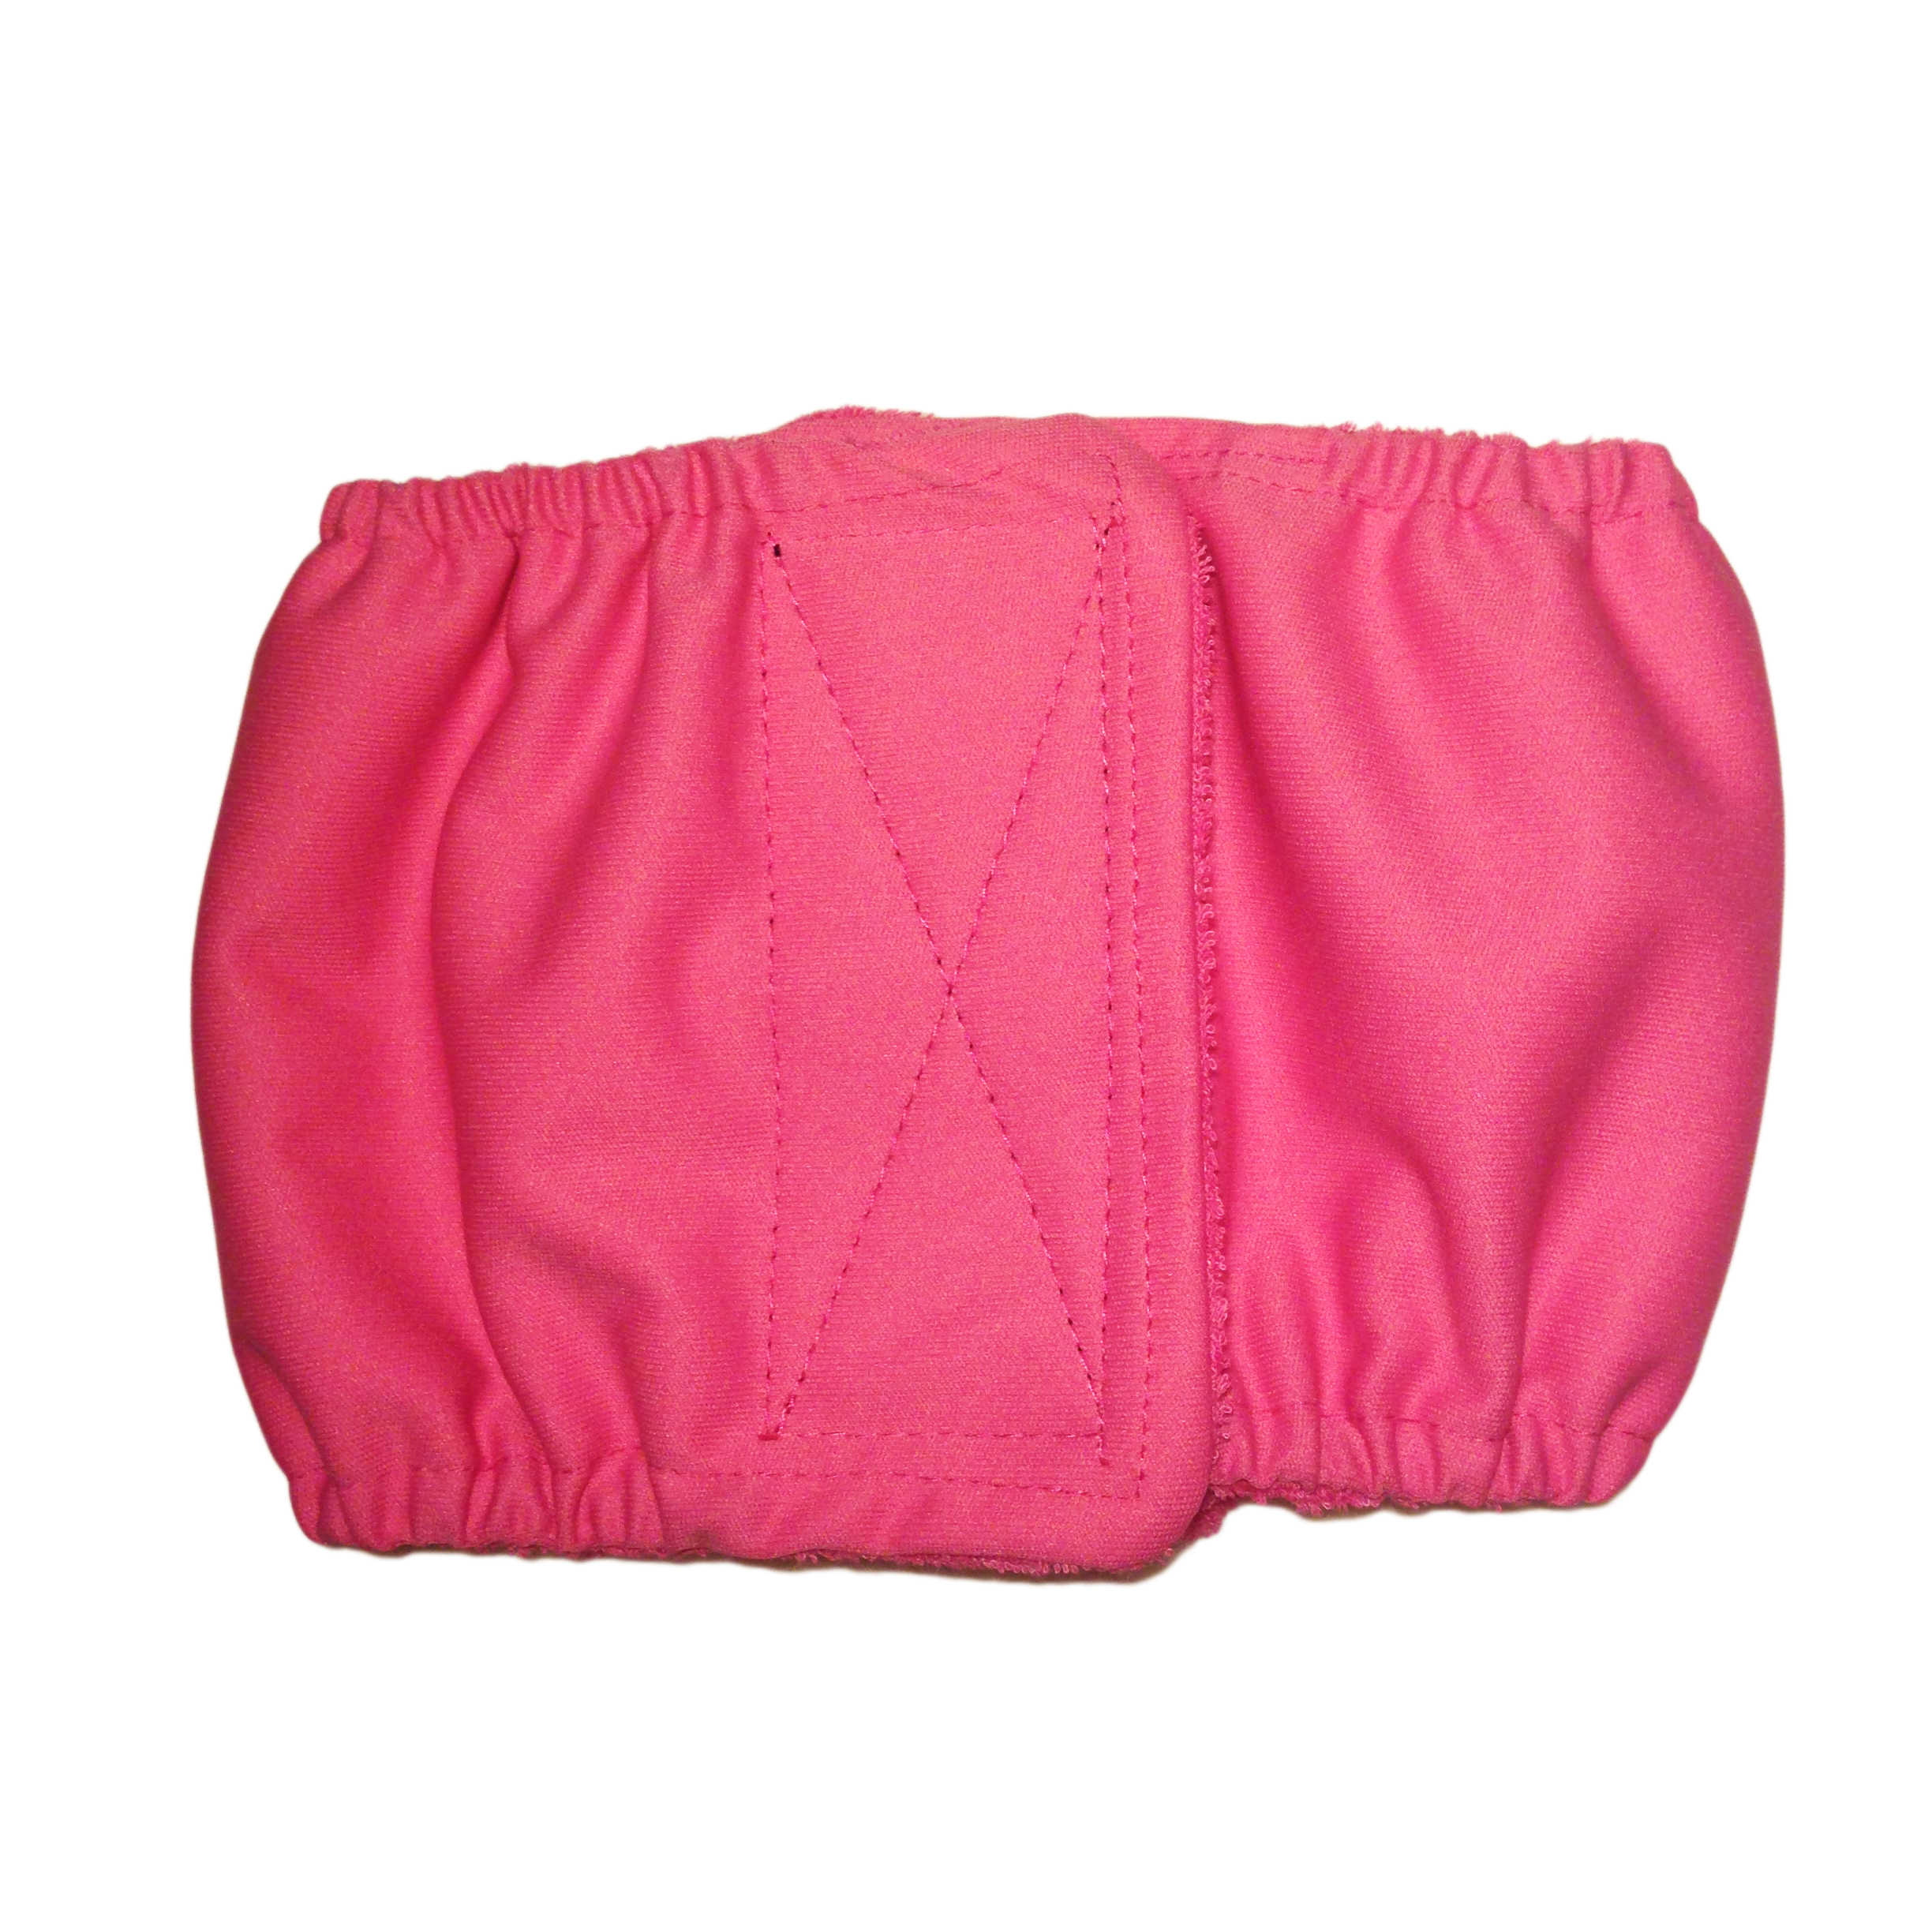 Barkertime Solid Pink Premium Waterproof Washable Dog